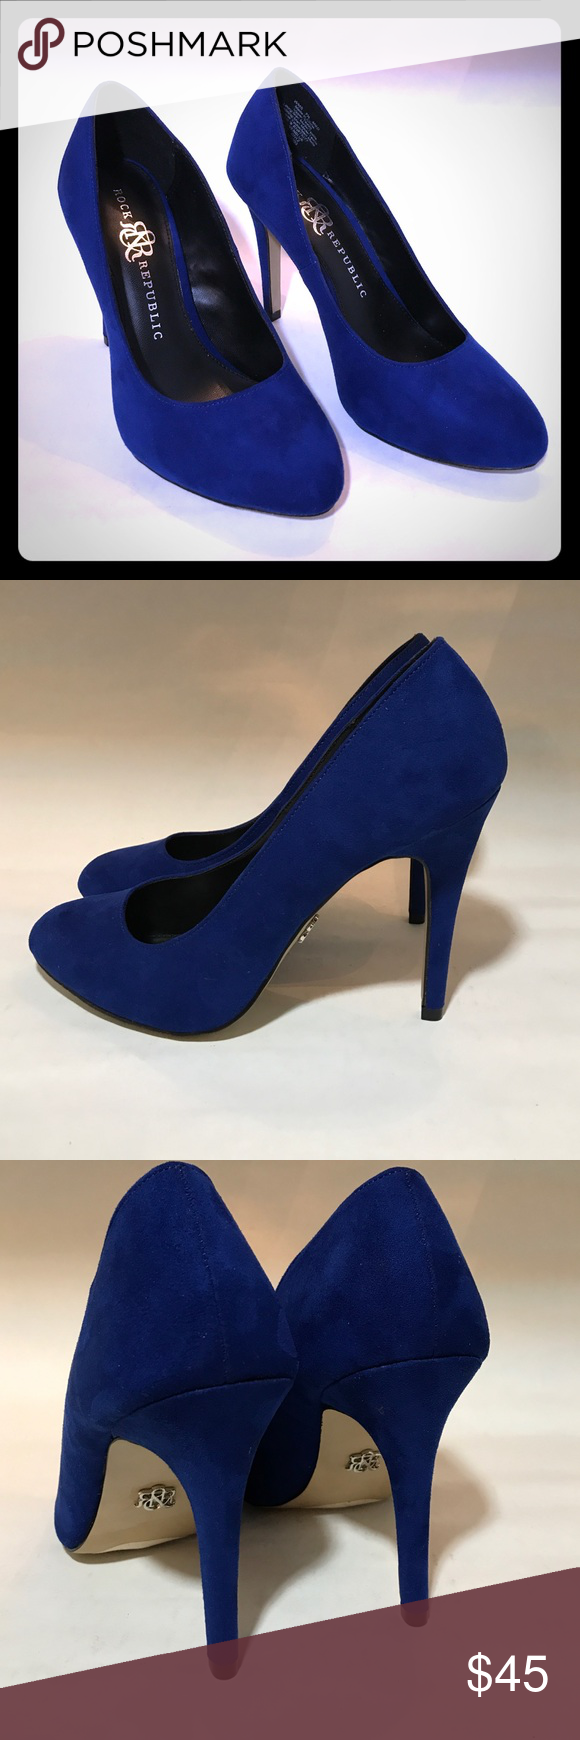 "Rock & Republic Heels size 7.5 Beautiful ""Gwen Blue"" pumps by Rock & Republic. New with box. 4 1//2"" heel. Rock & Republic Shoes Heels"